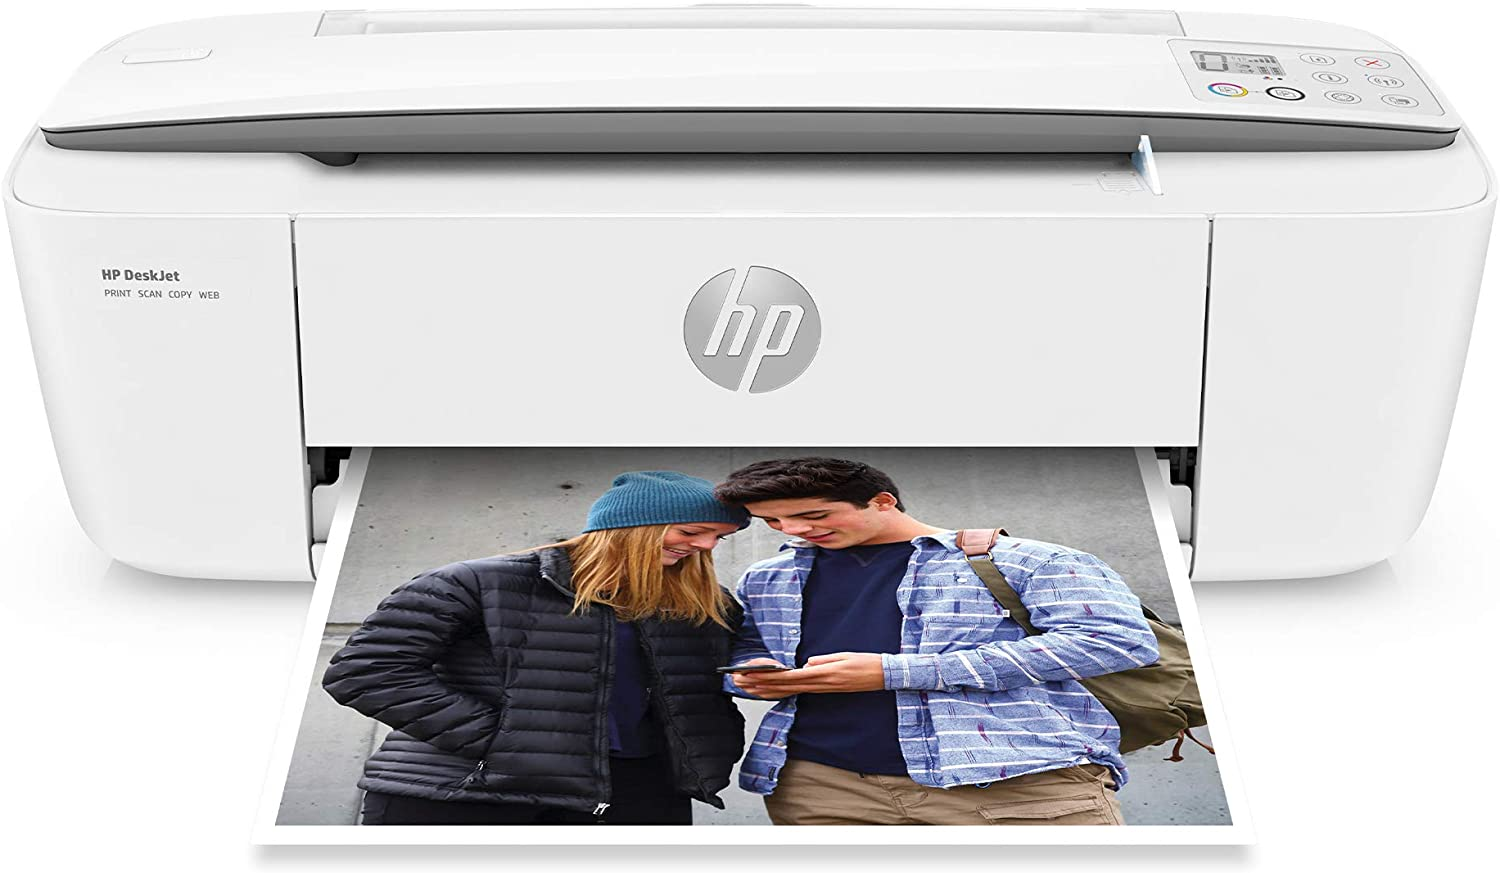 Hp DeskJet 37xx Series Wireless All-in-One Compact Color Inkjet Printer - Instant Ink Ready - Print, Scan, Copy for Home Business Office - lcon LCD Display, Up to 1200 x 1200 dpi